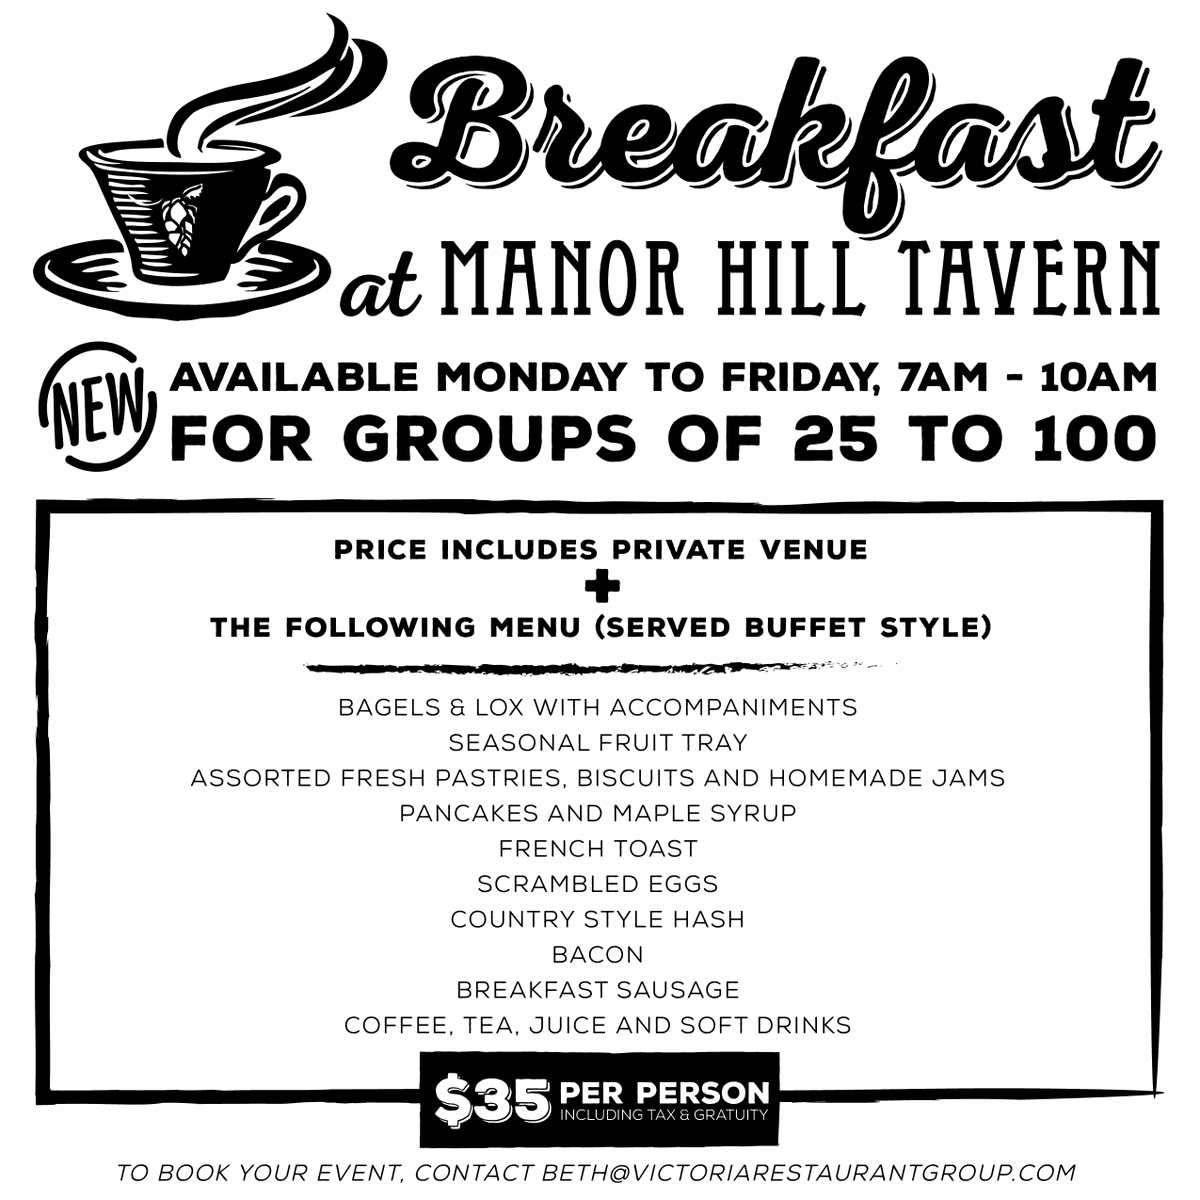 We've got an exciting new Breakfast Package to offer groups looking to hold morning meetings or get-togethers! This one-of-a-kind experience can be booked by emailing Beth@victoriarestaurantgroup.com. #NotYourTypicalTavern #OEC #EllicottCity #PrivateEvents #Breakfast #EatLocal